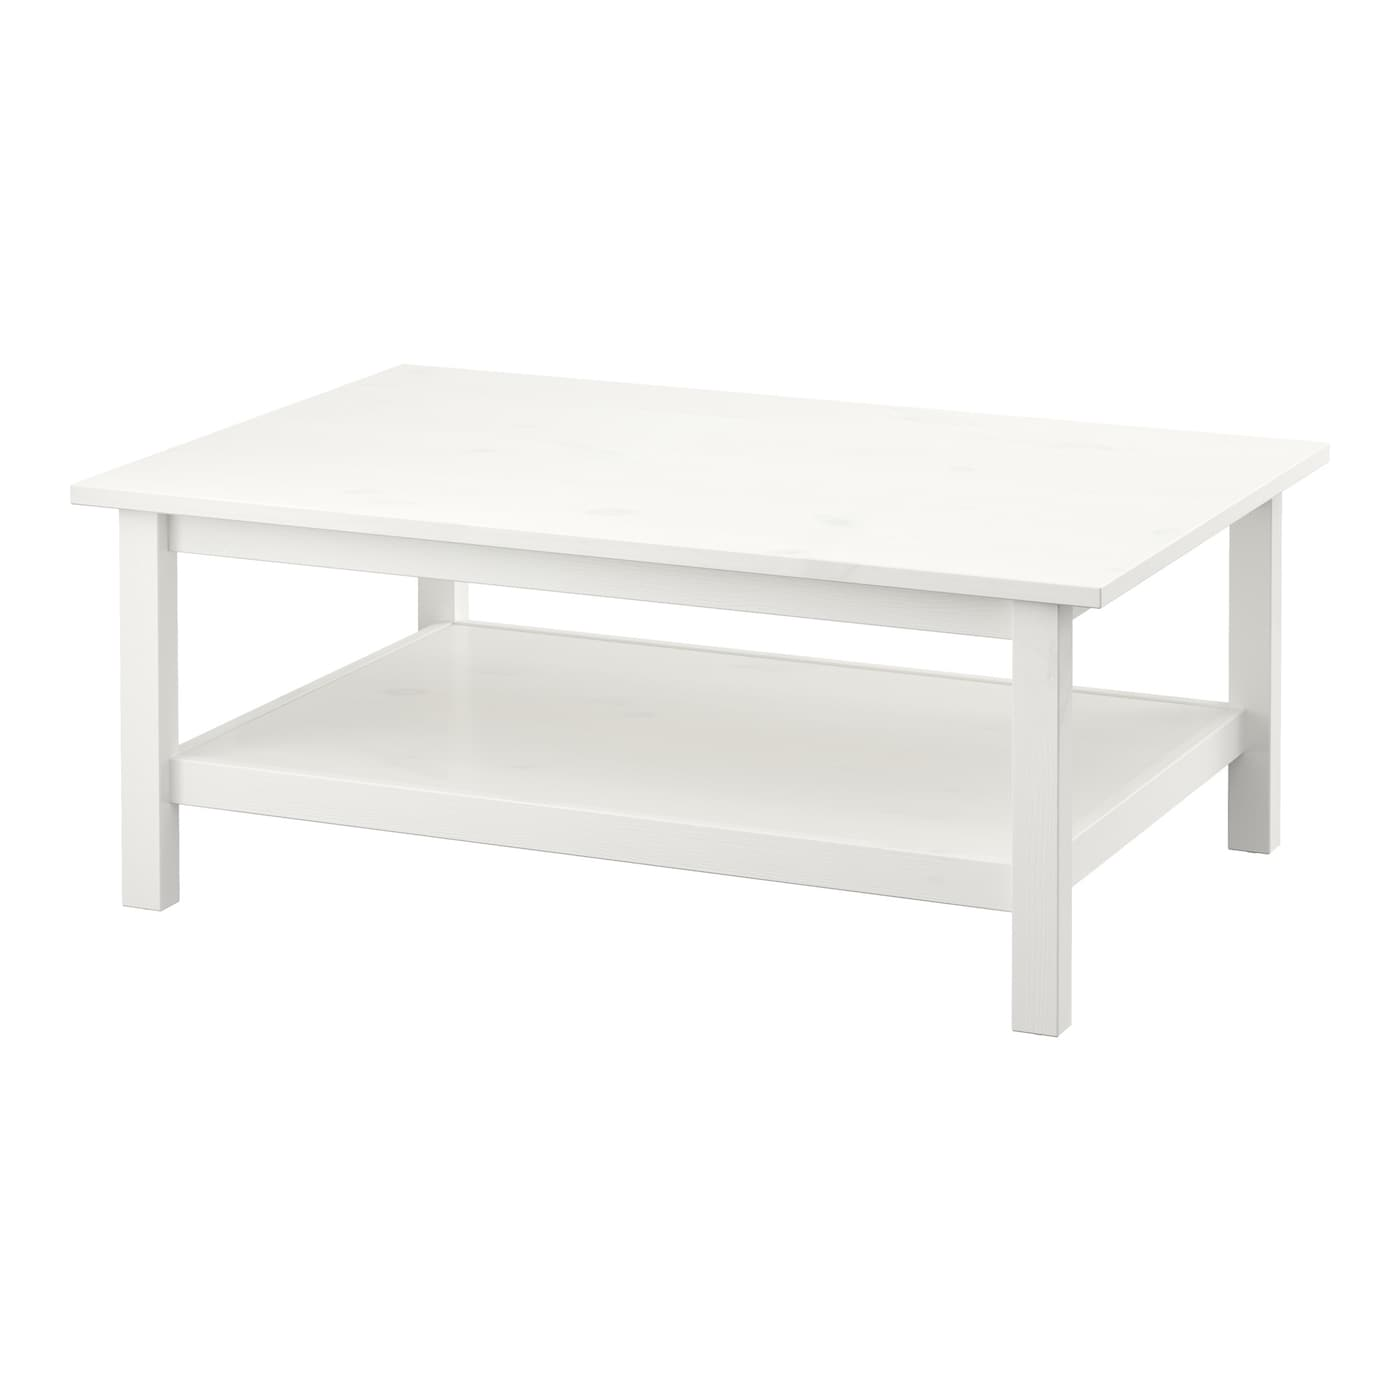 HEMNES Coffee table White stain 118x75 cm IKEA